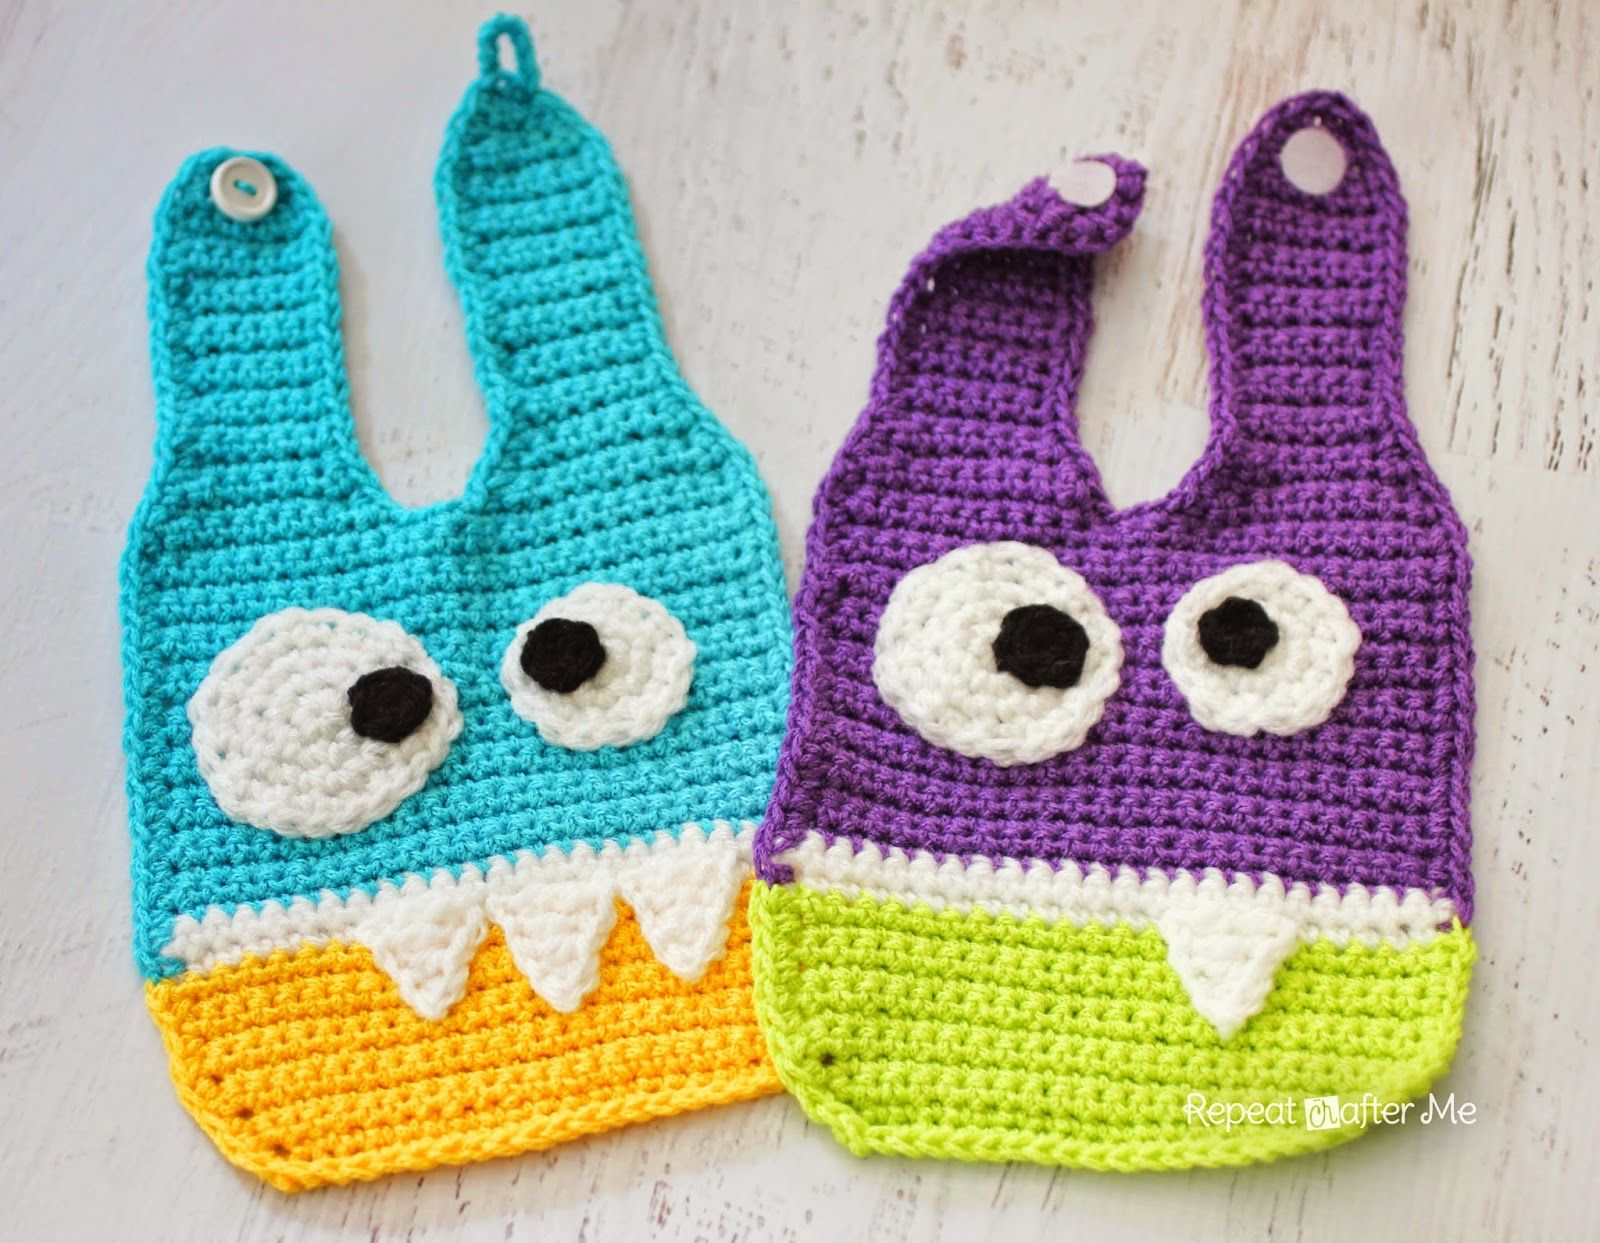 Crochet monster baby bibs repeat crafter me crochet monsters crochet monster baby bibs bankloansurffo Image collections